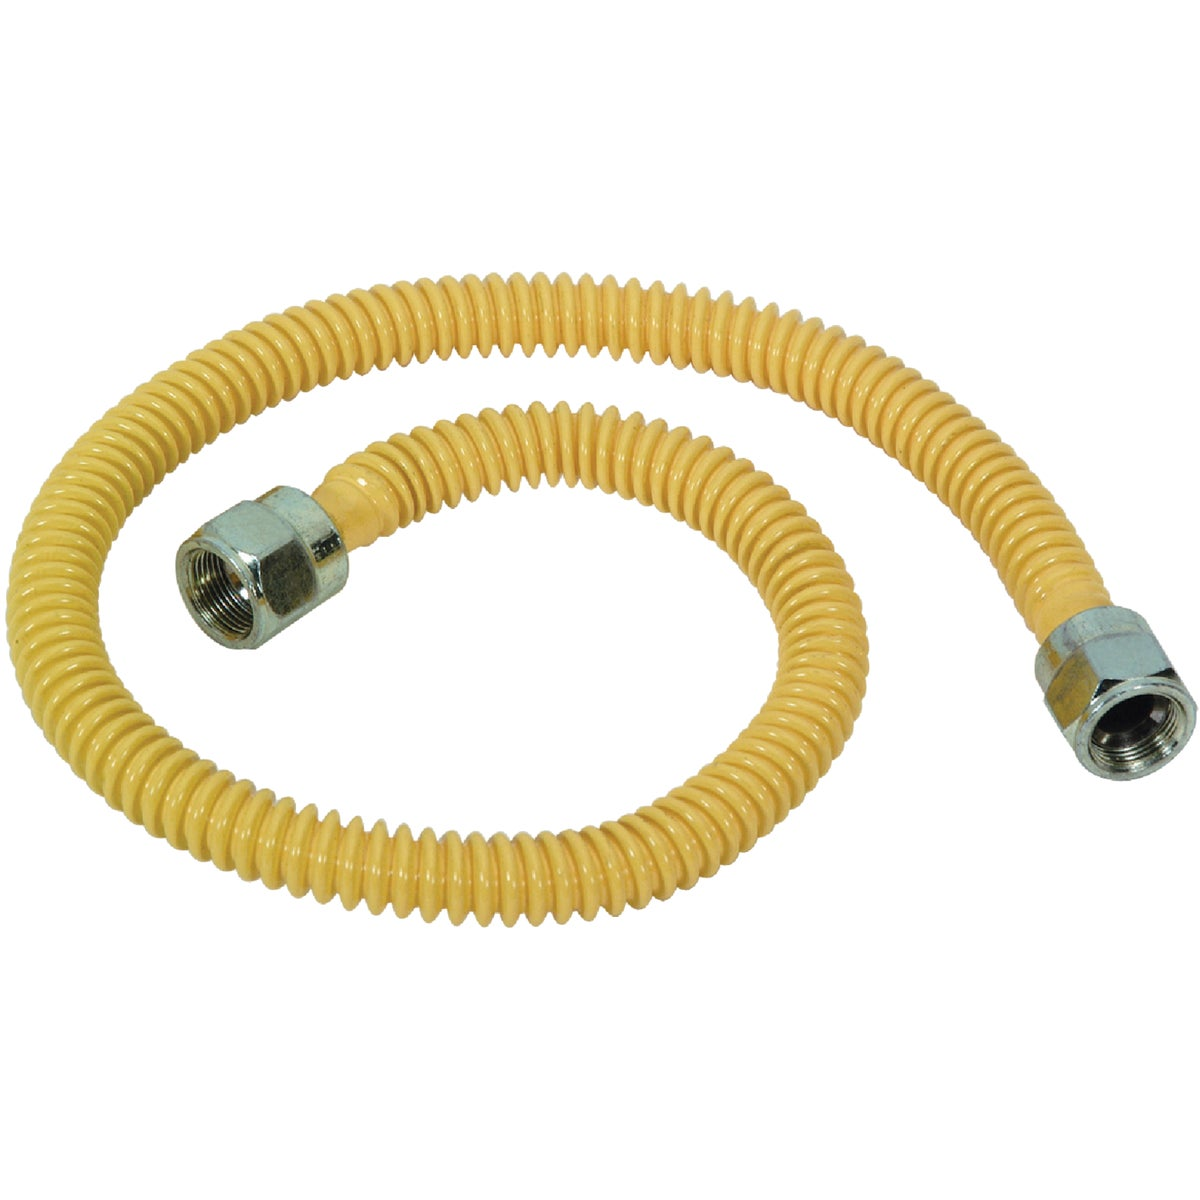 "3/8"" GAS CONNECTOR - CSSTNN-34N by Brass Craft"